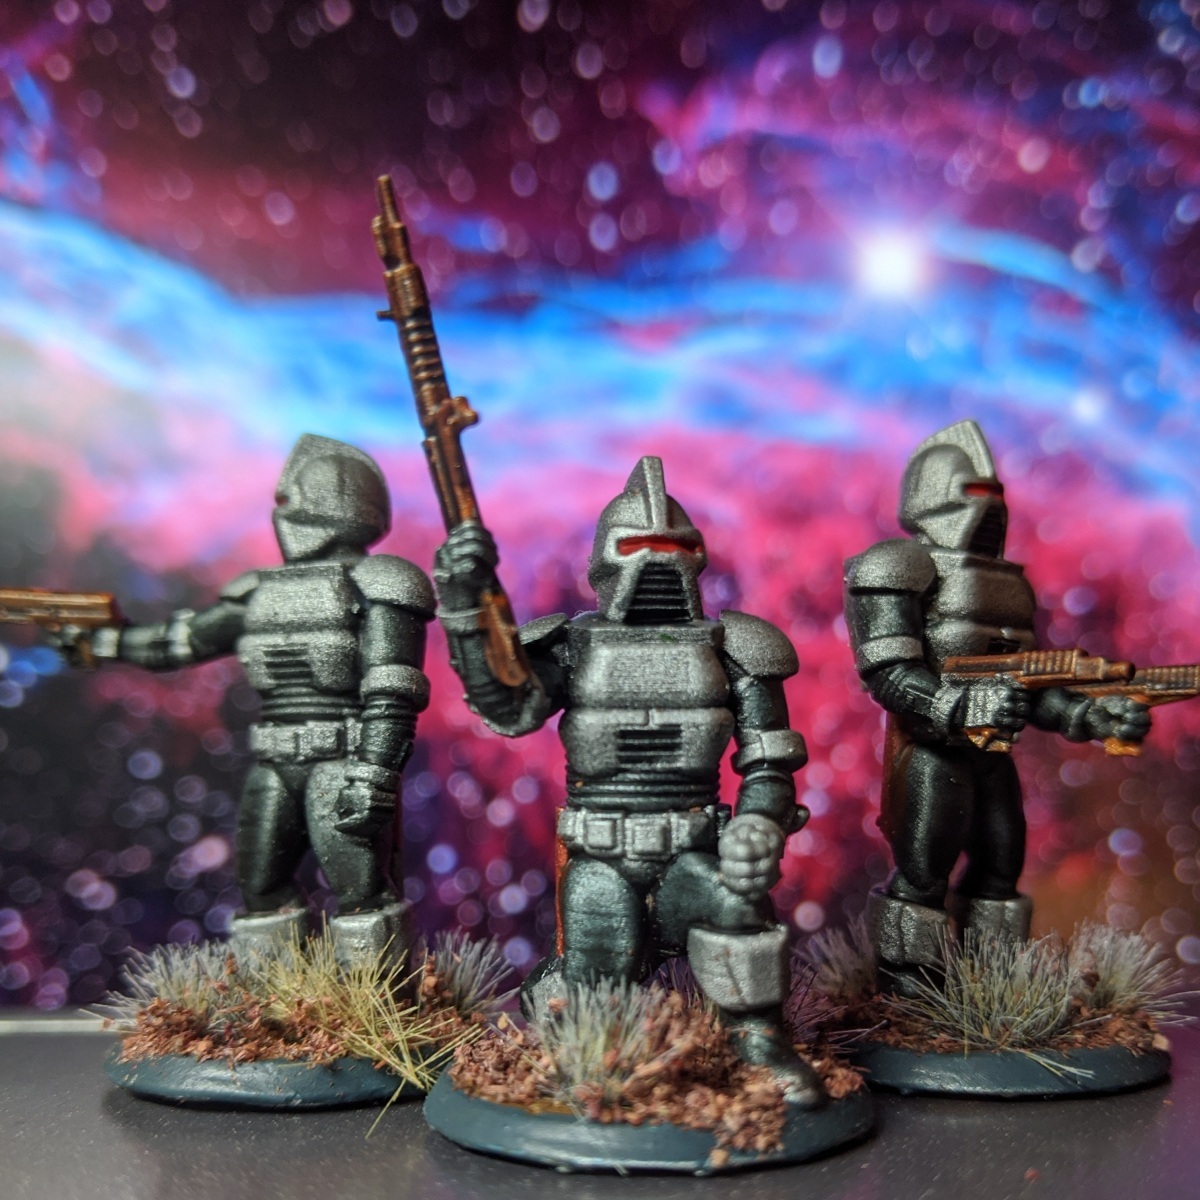 By your command – Galactic Centurions and Imperious Leader